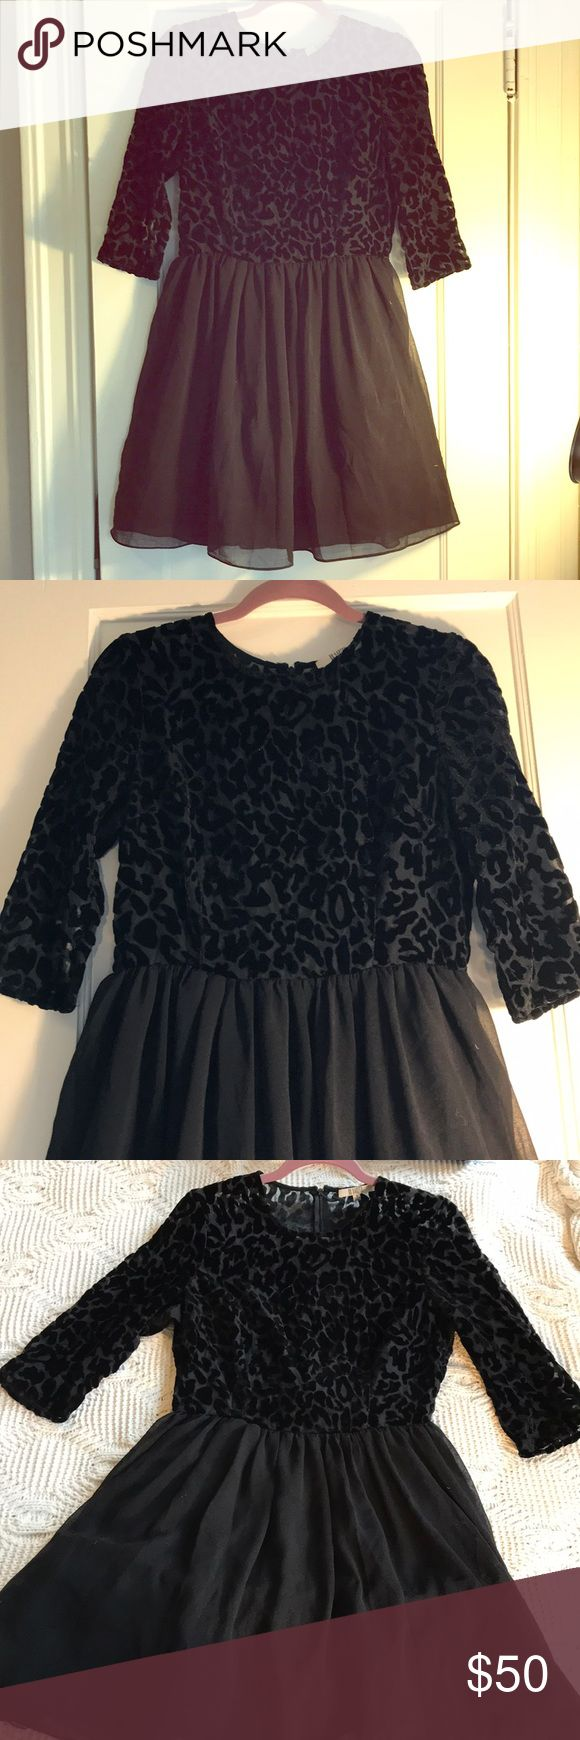 BB Dakota black leopard and tulle dress! Adorable black B.B. Dakota dress, with a velvet leopard pattern on chest and 3/4 sleeves, and a tulle skirt. Worn once, with no signs of wear or flaws. This dress is adorable, the tulle keeps the skirt nice and full, so it really can be dressed up for formal events, or down with booties and a leather jacket! Perfect for Valentine's Day! Submit an offer, and I'll work with you to make this dress your new closet go-to! BB Dakota Dresses Long Sleeve